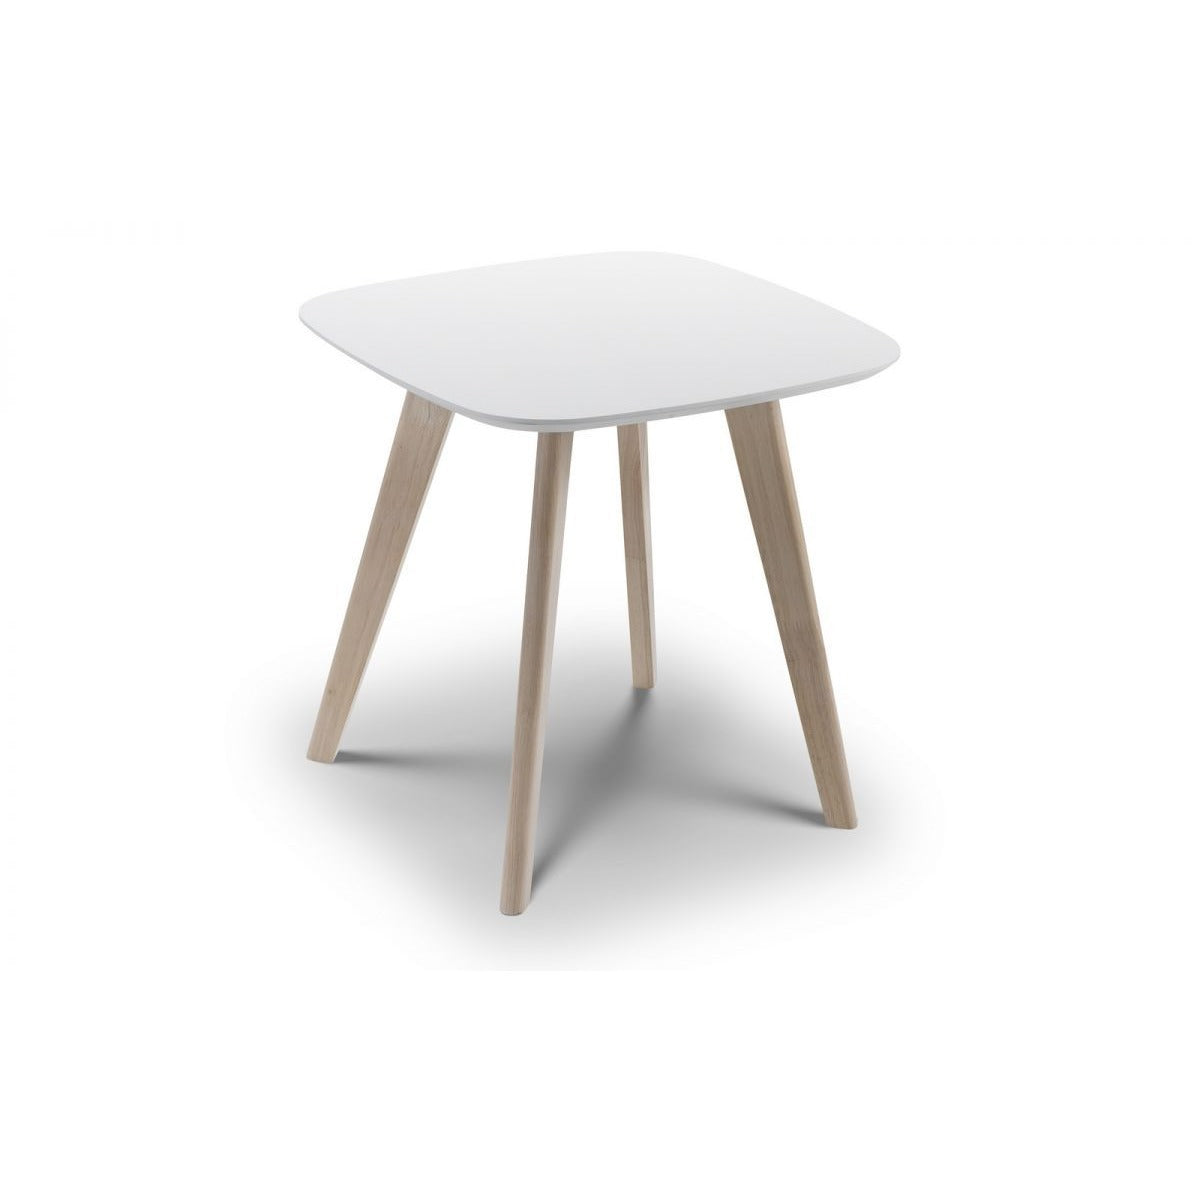 Casa white Lamp Table - Perfectly Home Interiors